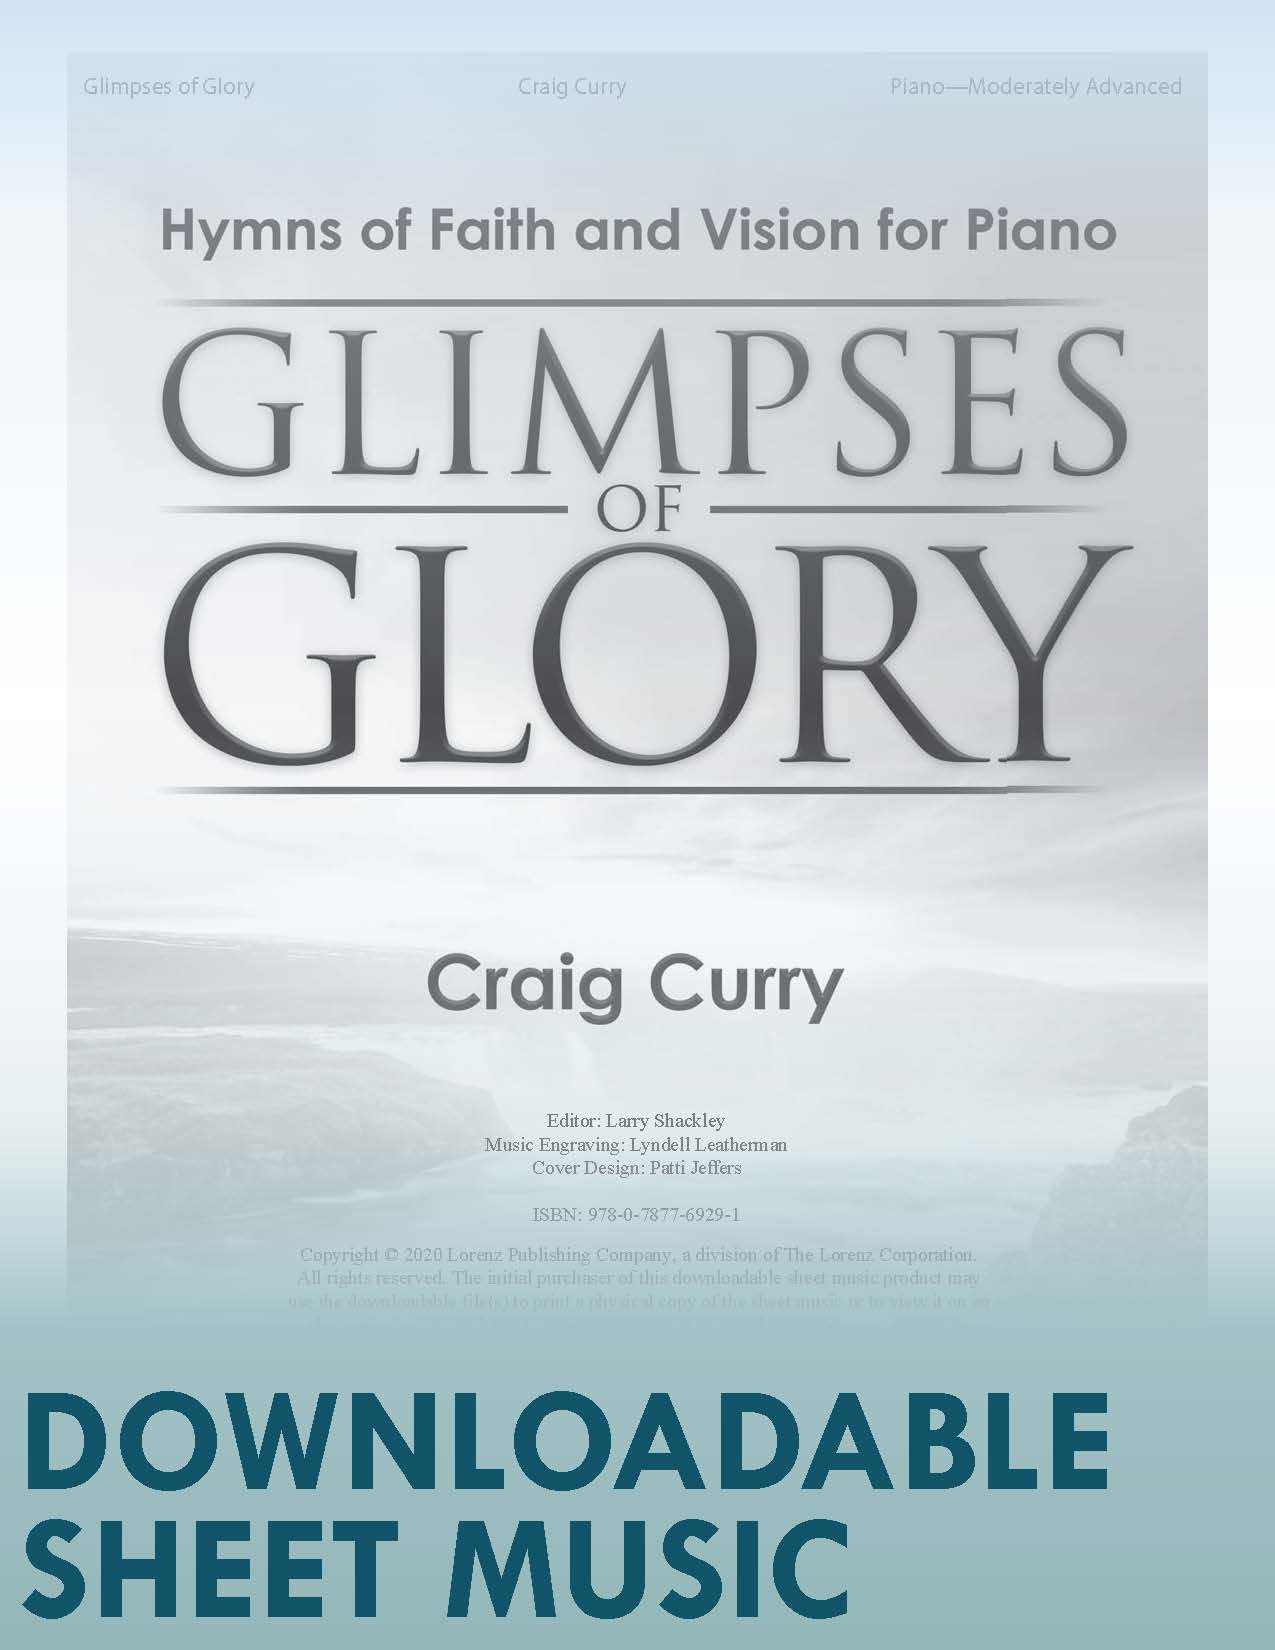 Glimpses of Glory - Digital Download